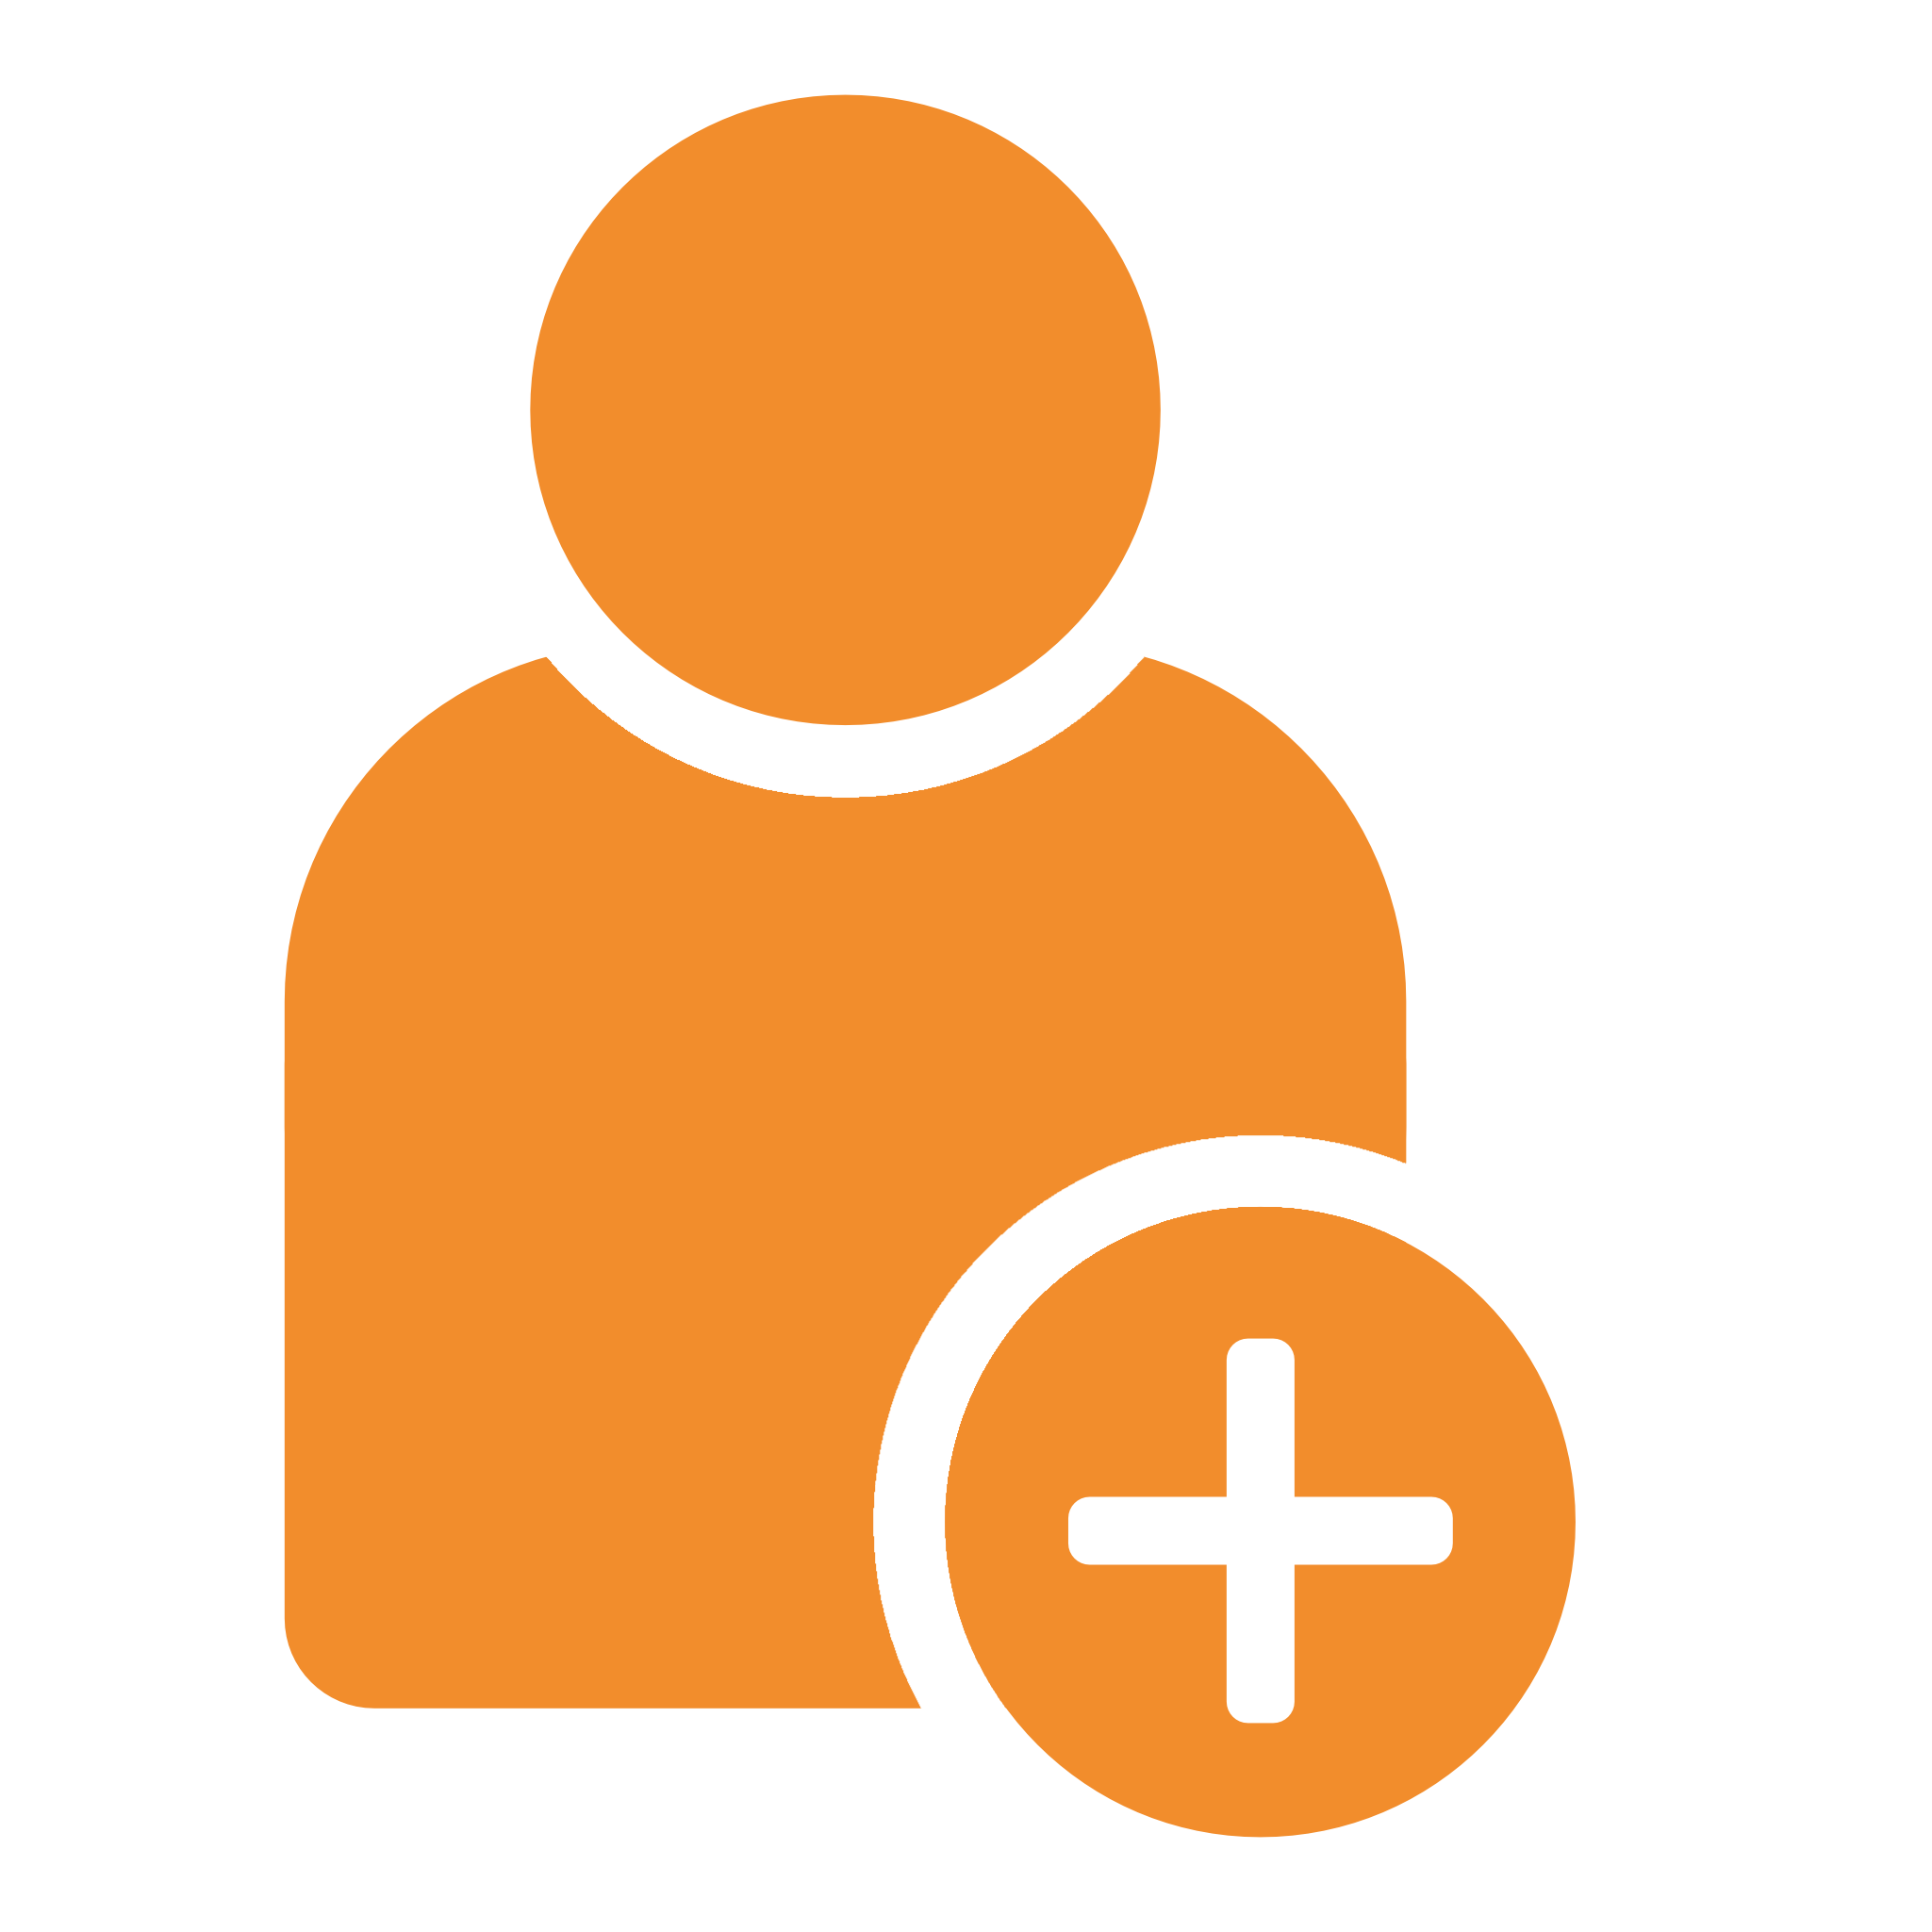 orange icon of a person with a plus sign in the front